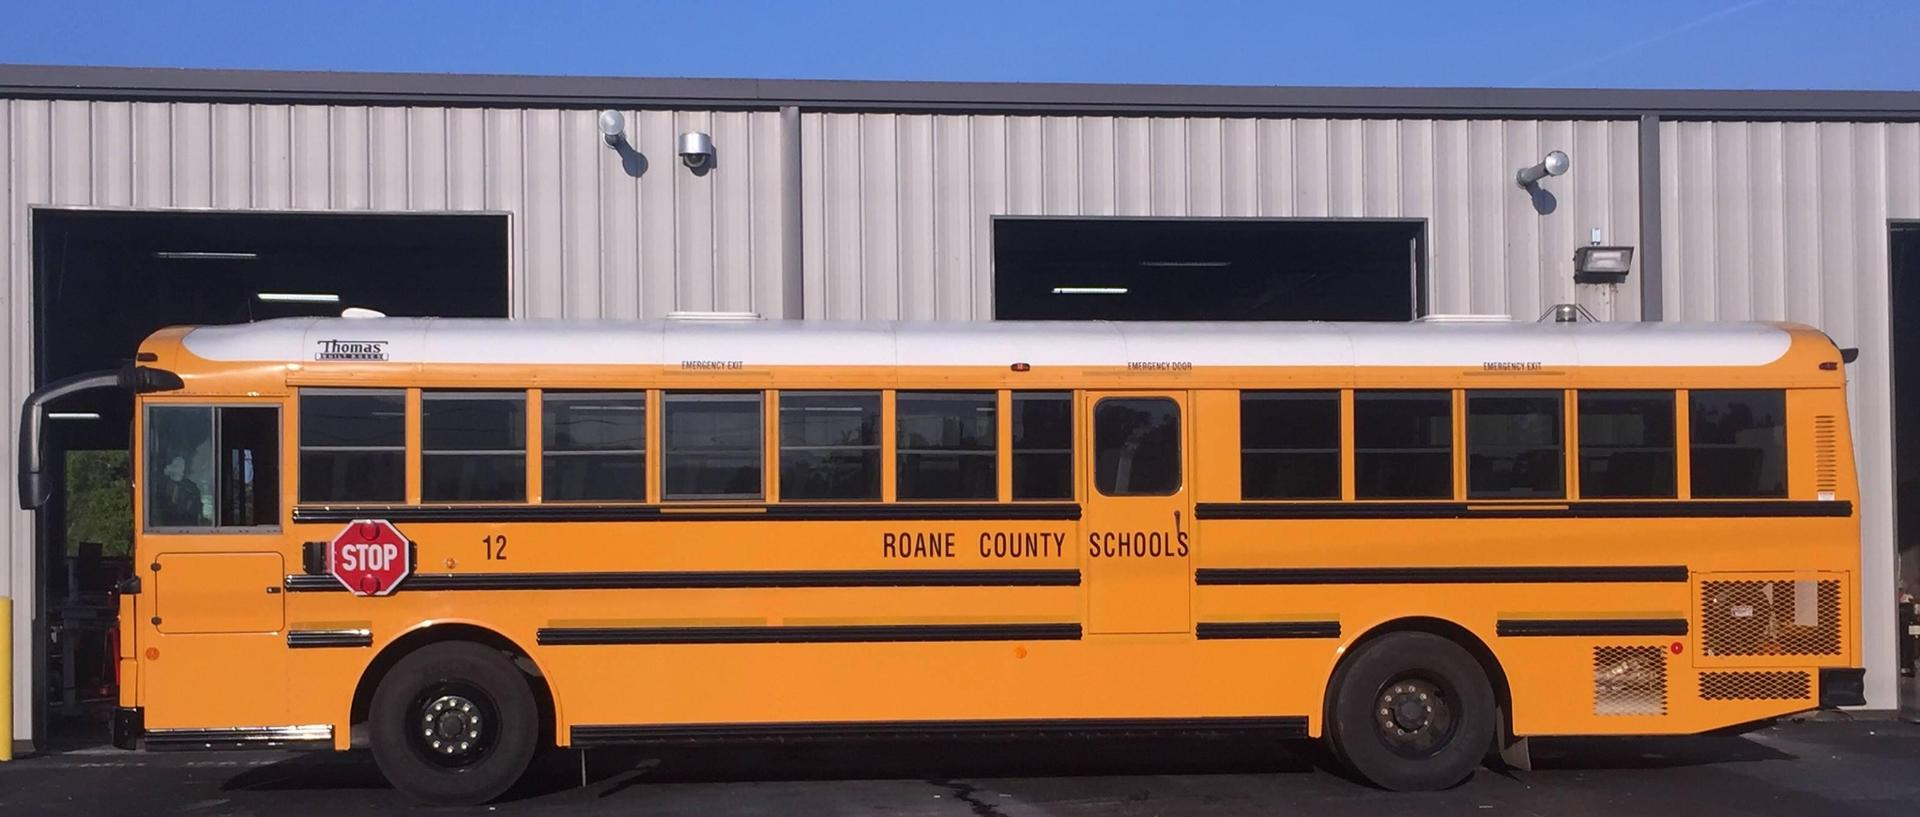 Roane County School bus in front of bus garage